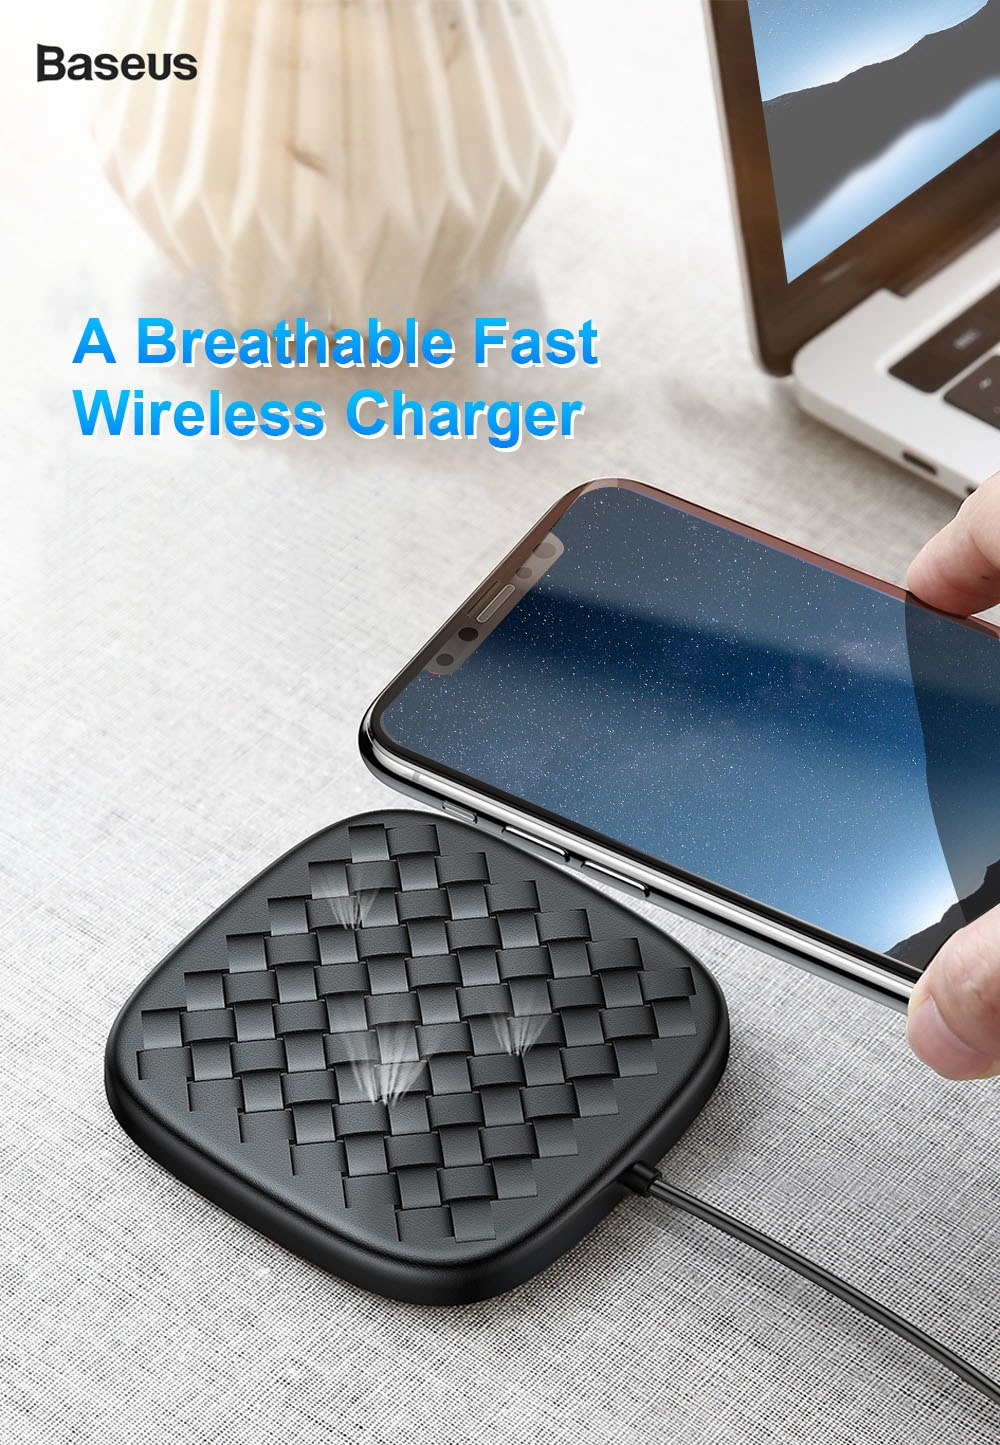 Baseus BV Wireless charger_1.jpeg